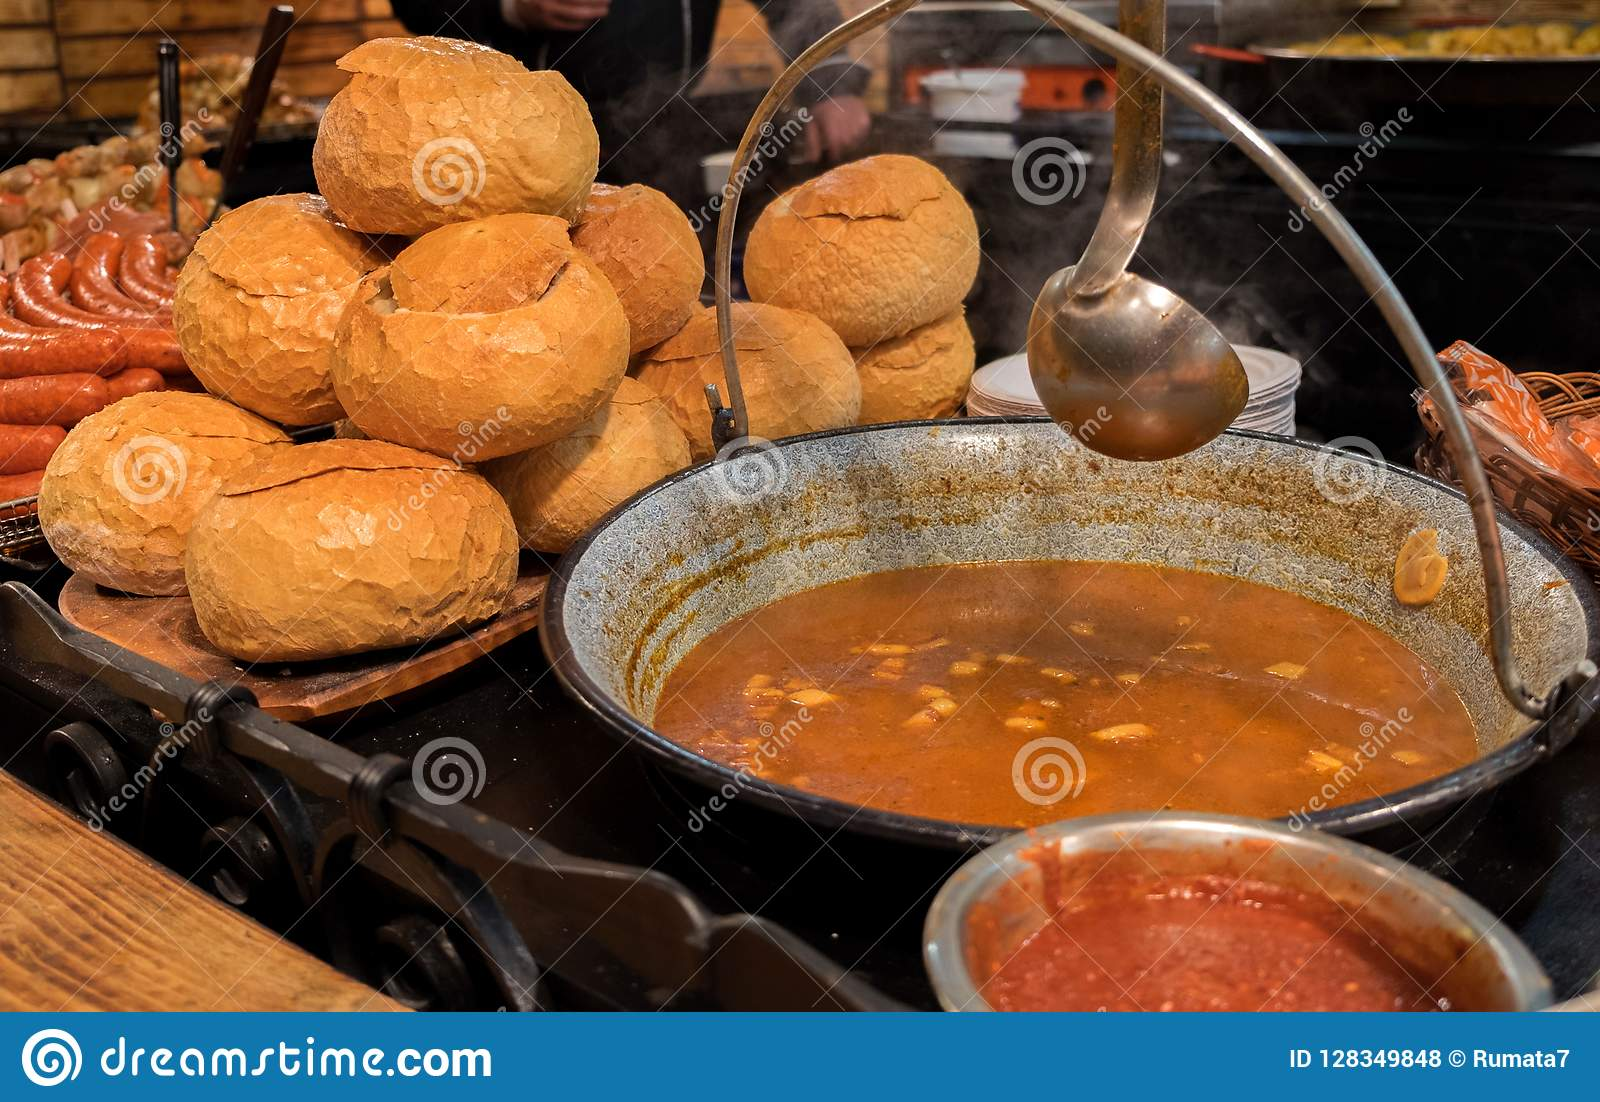 Hungarian Goulash - is a soup or stew of meat and vegetables